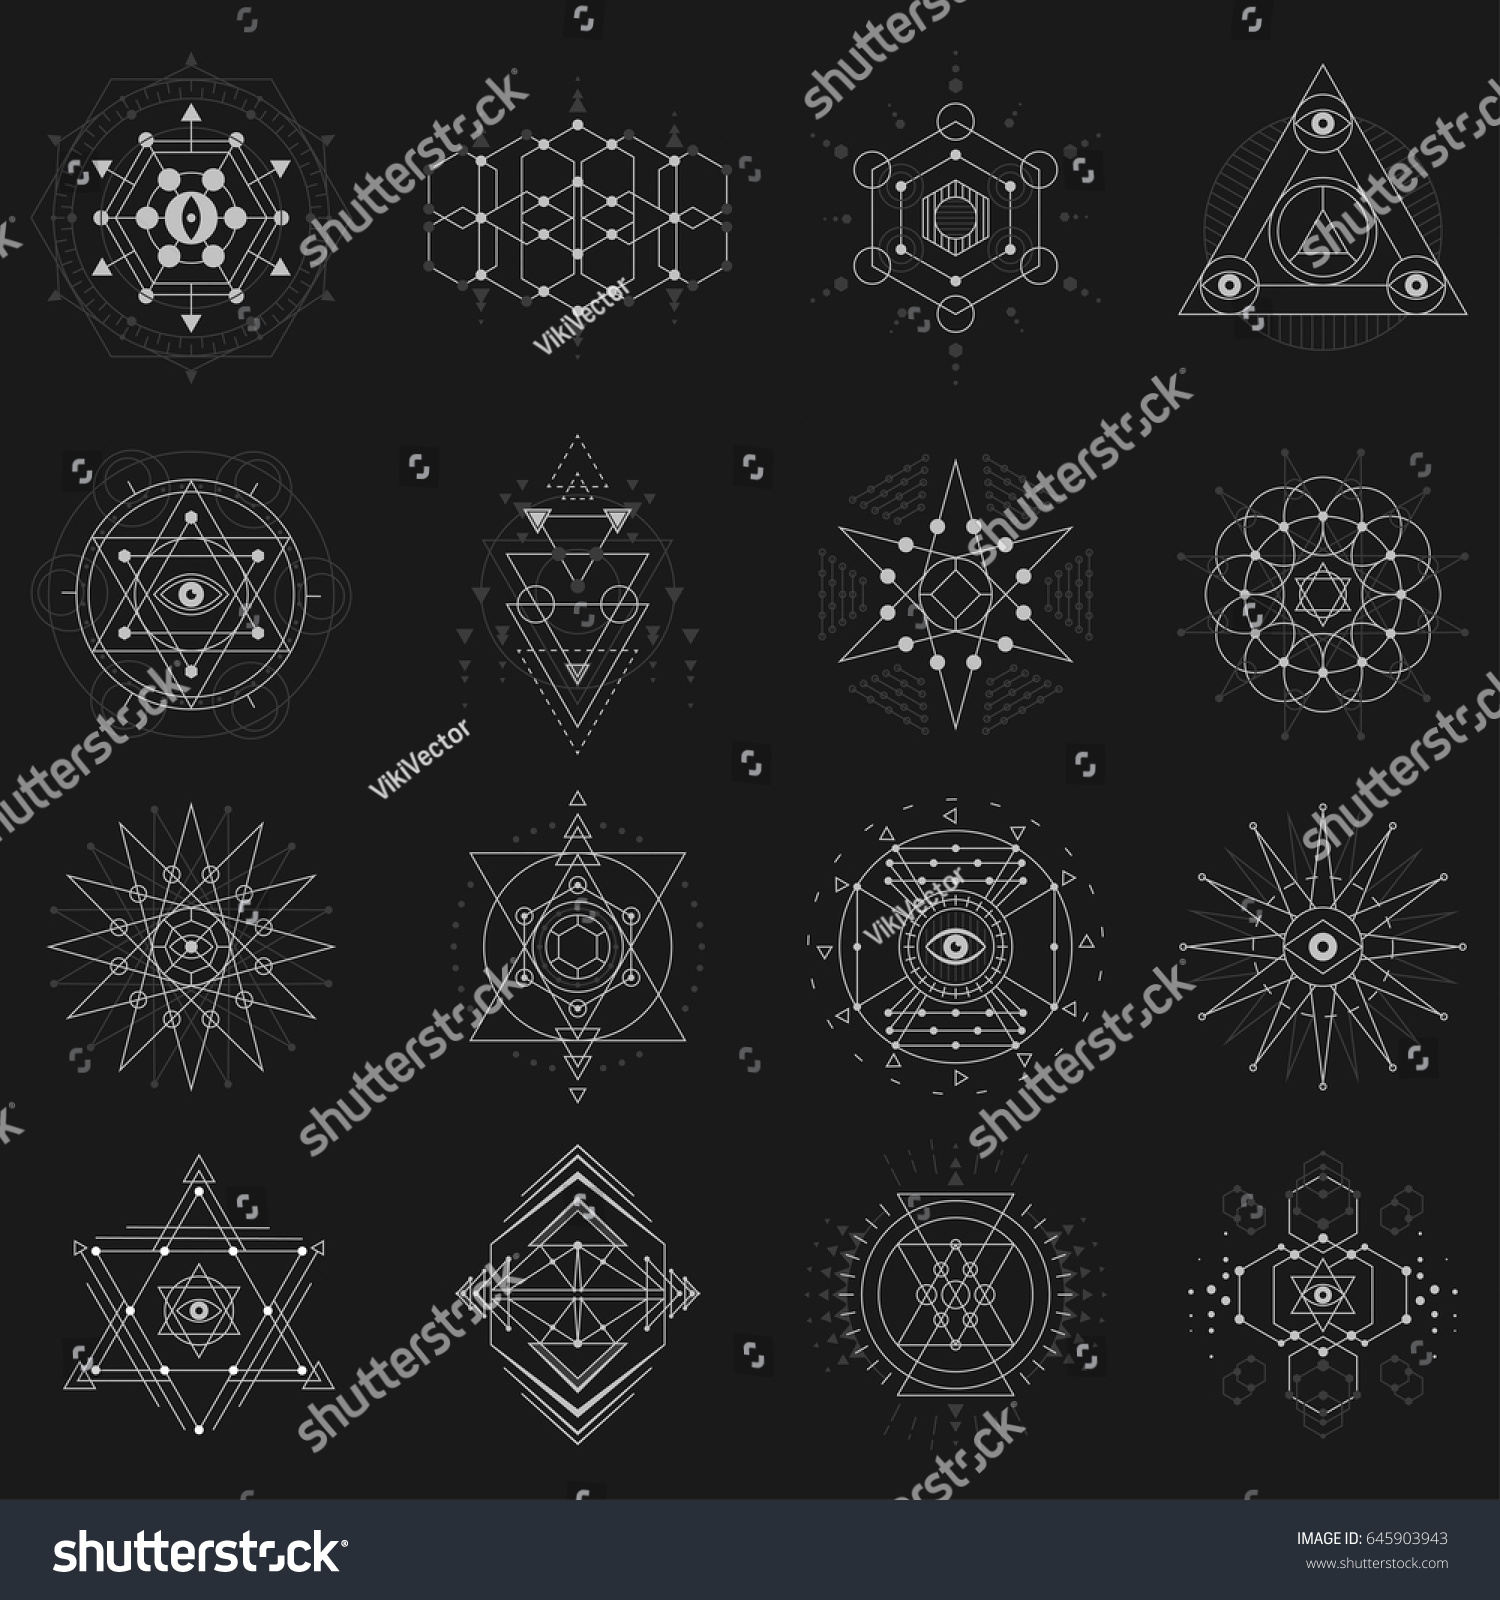 Images of Sacred Geometric Shapes And Meanings - #rock-cafe